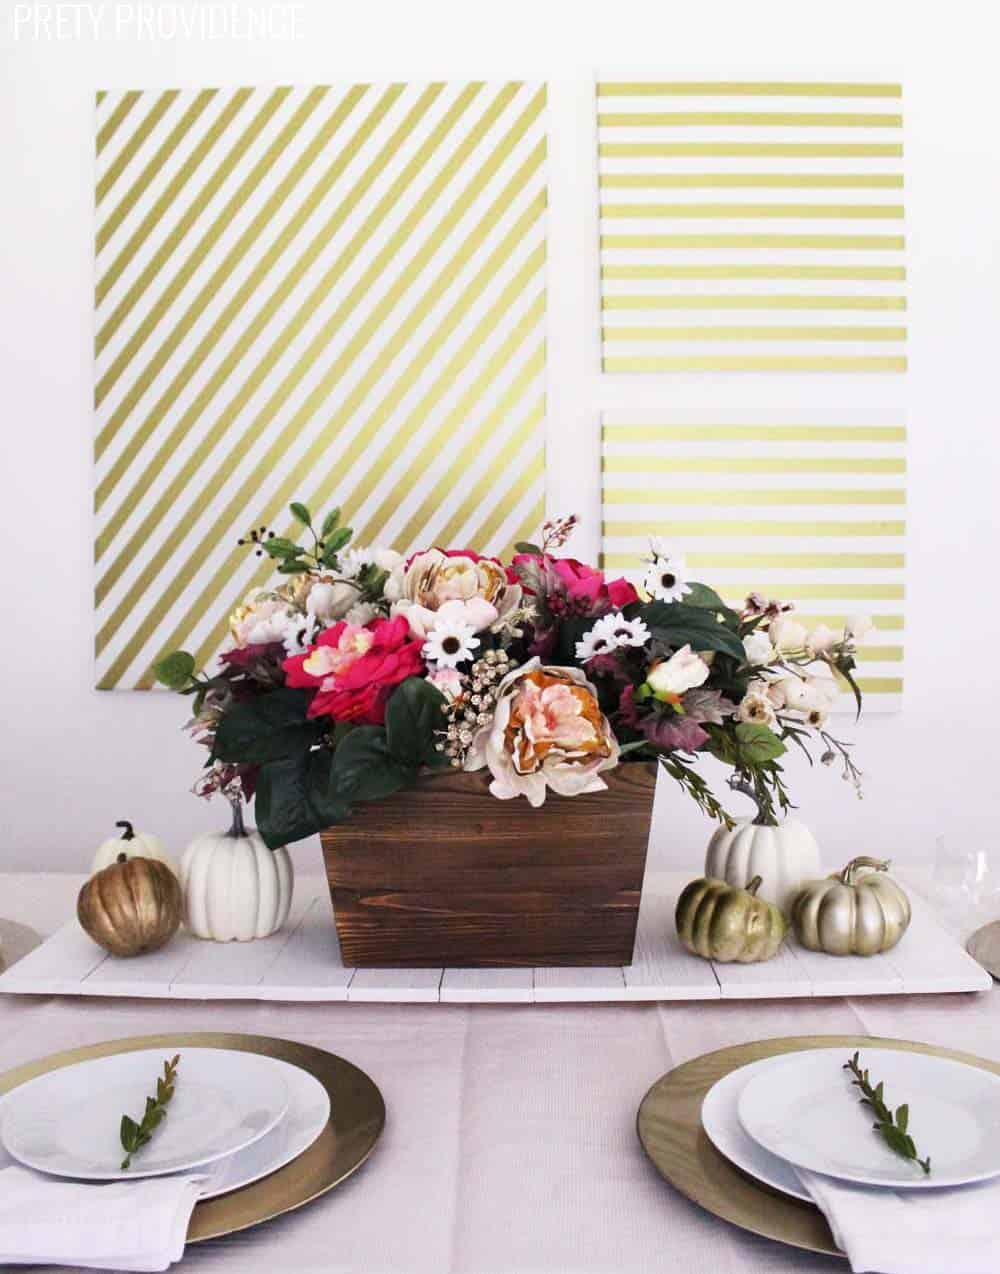 This fall table decor is perfect for thanksgiving!! You can't go wrong with floral table decorations!